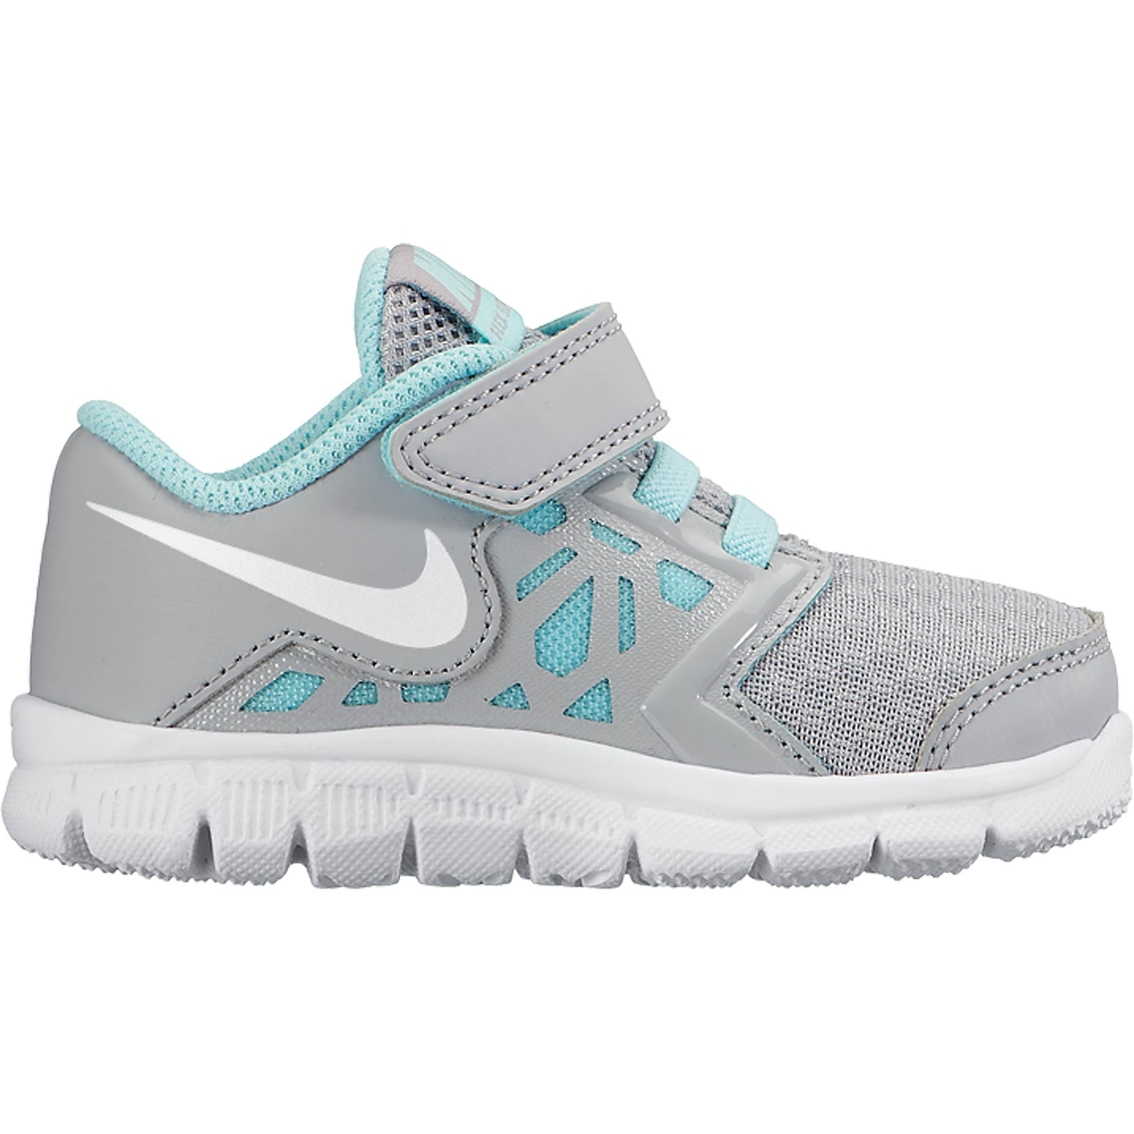 Nike Toddler Girls Flex Supreme Training Shoes Infant